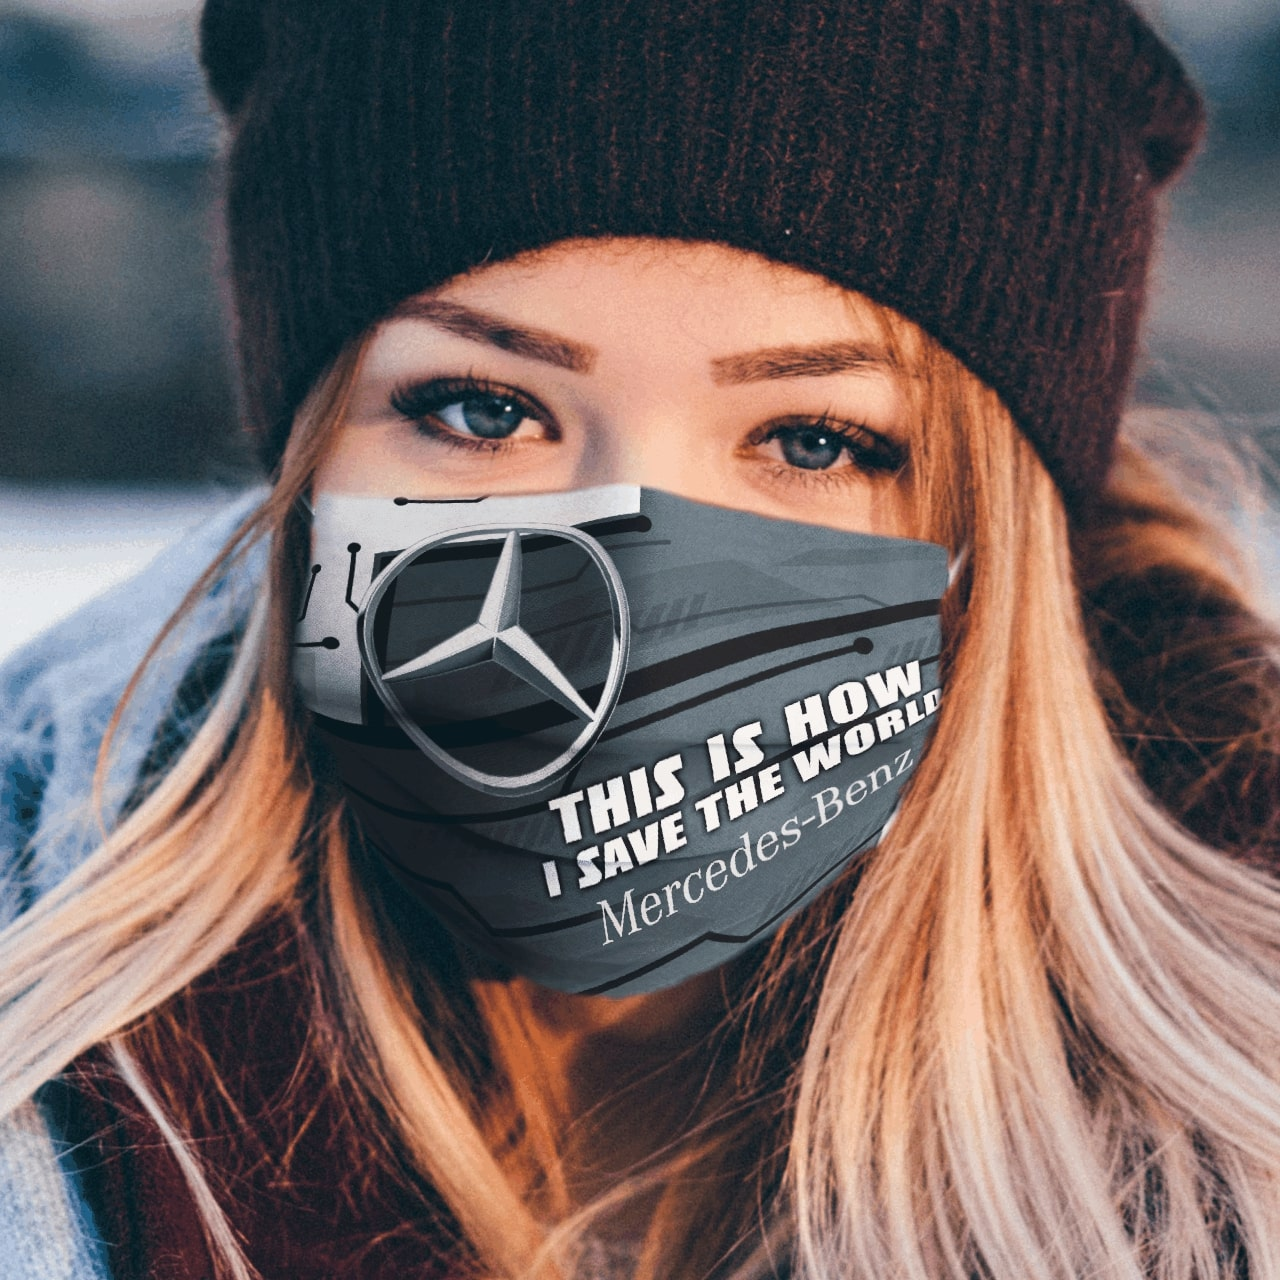 This is how i save the world mercedes-benz full printing face mask 1